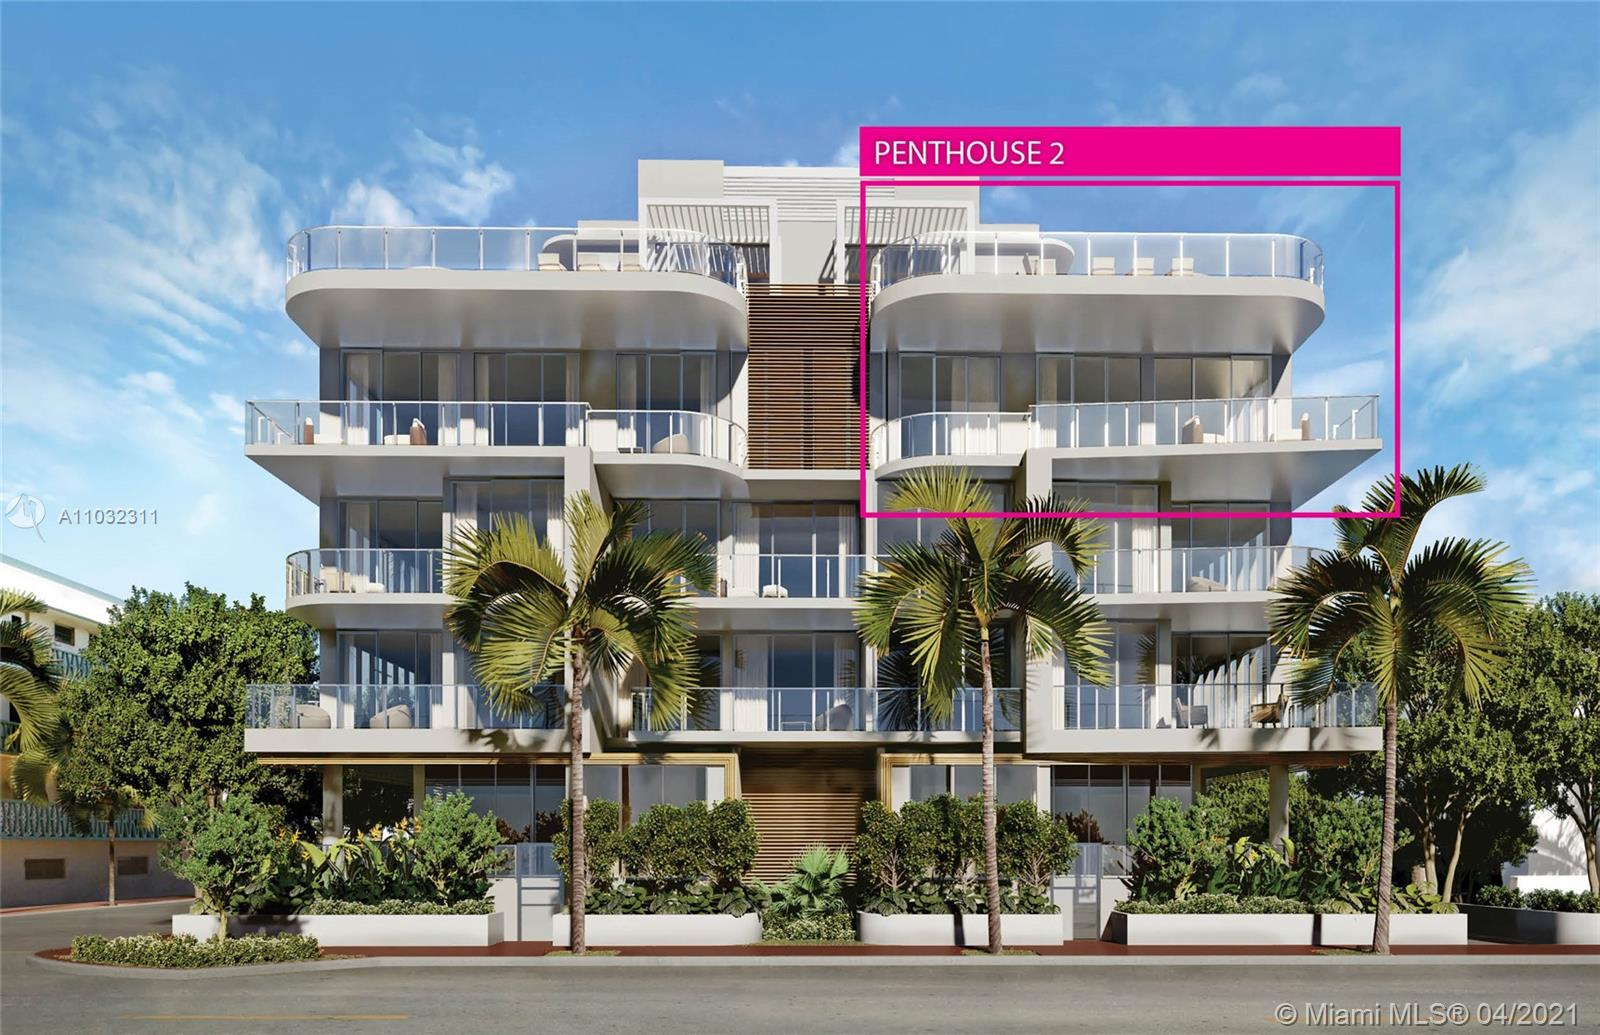 Photo of Ocean Park South Beach Apt PH2 that clicks through to the property detail page